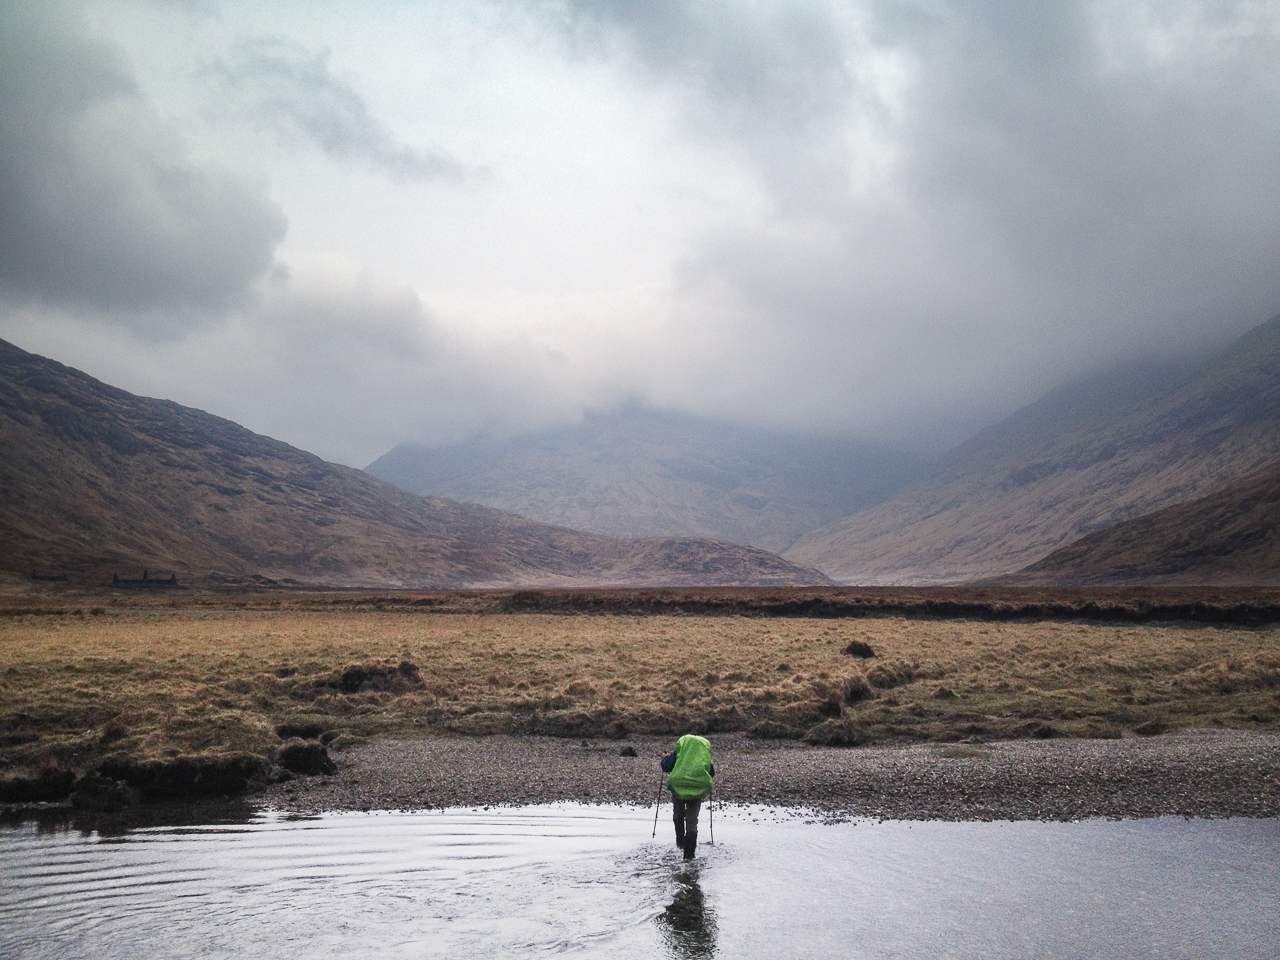 Cape Wrath Trail: Andy Wasley crosses the River Carnach in Knoydart, Scotland, during an attempt on the Cape Wrath Trail. (Image courtesy of Jan-Philipp Kappner.)